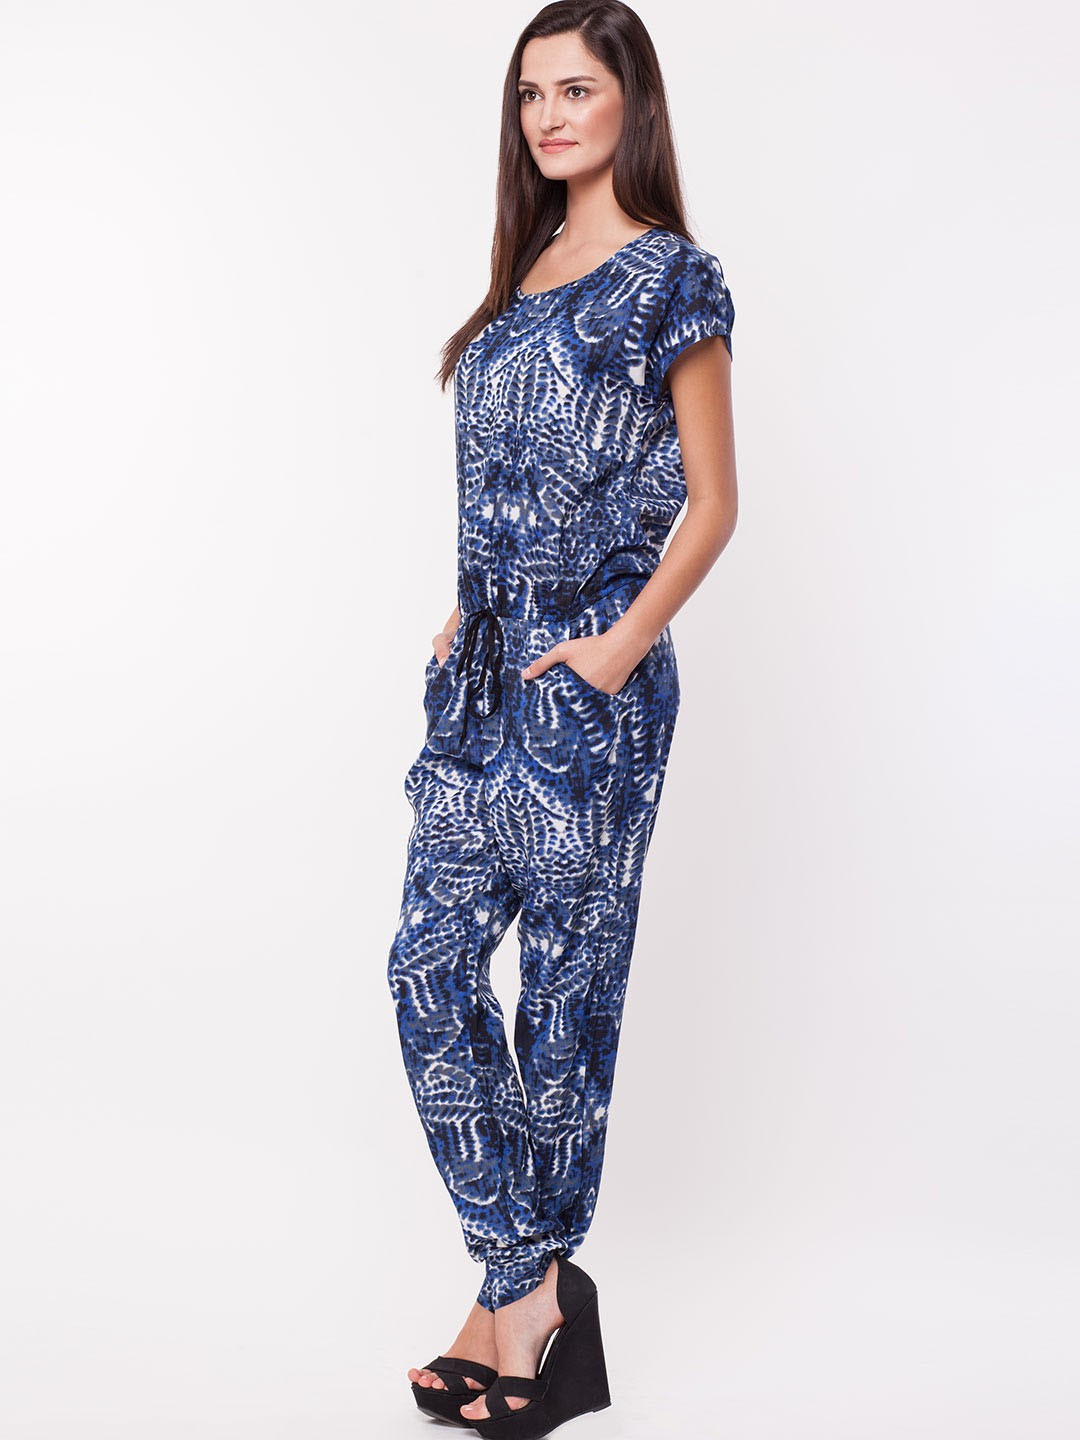 Buy Printed Loose Fit Jumpsuit For Women - Womenu0026#39;s Blue Jumpsuits Online In India